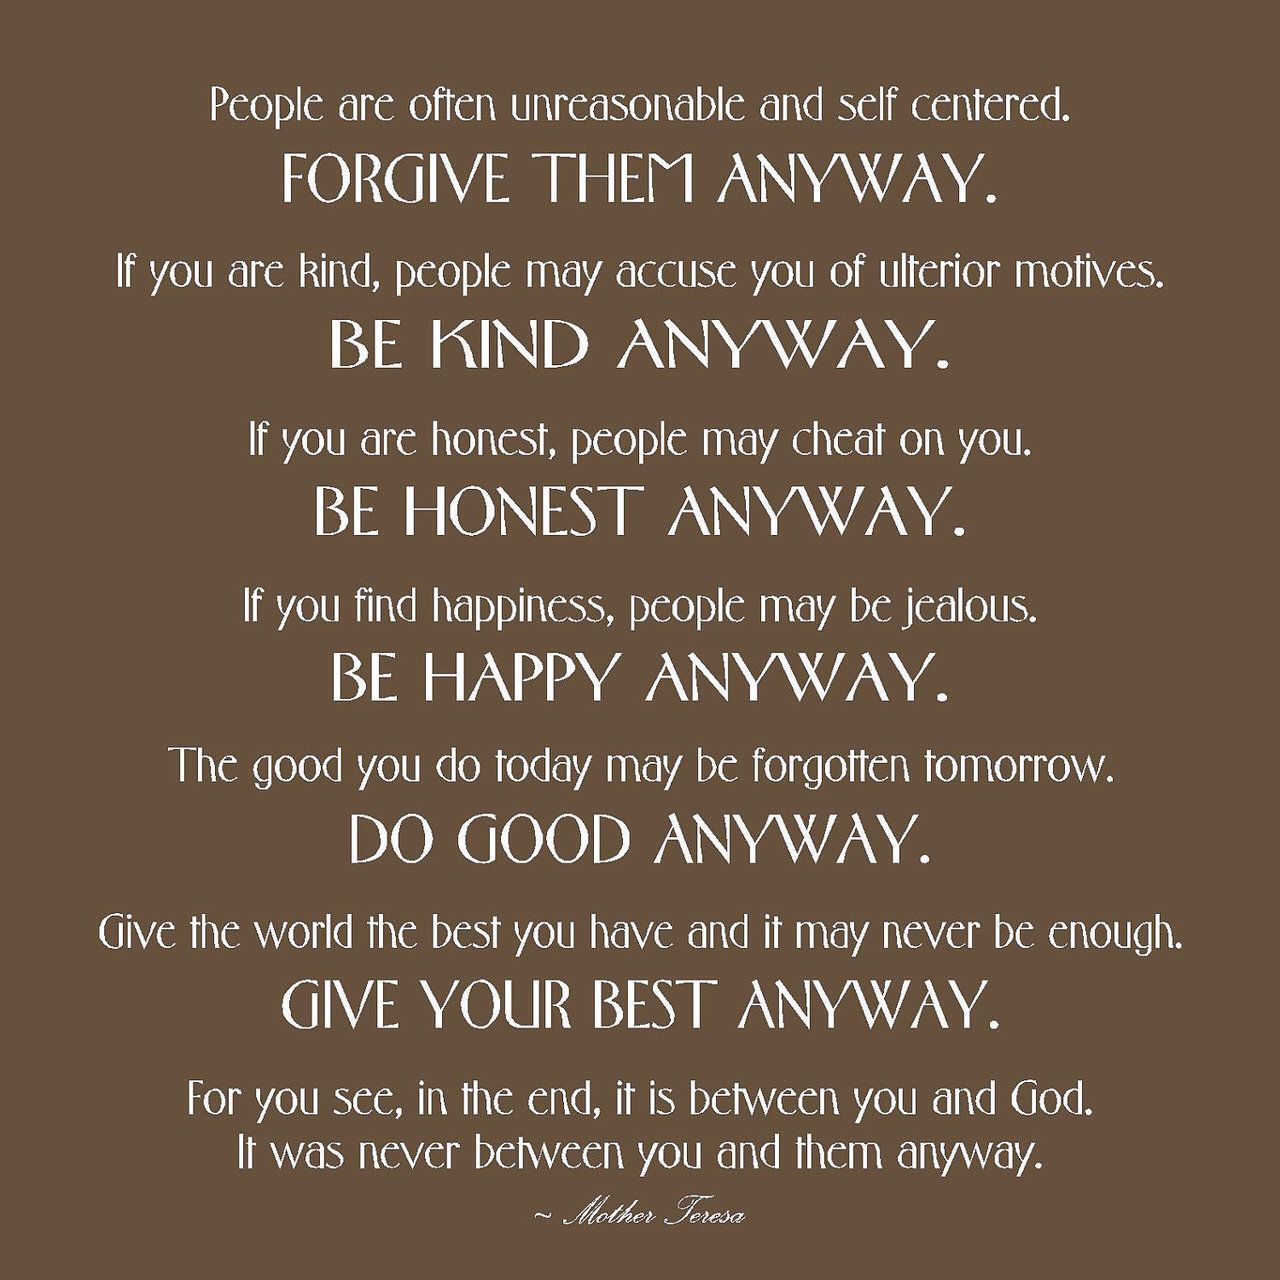 Do it anyway poem by mother theresa quotes pinterest poem do it anyway poem by mother theresa thecheapjerseys Choice Image